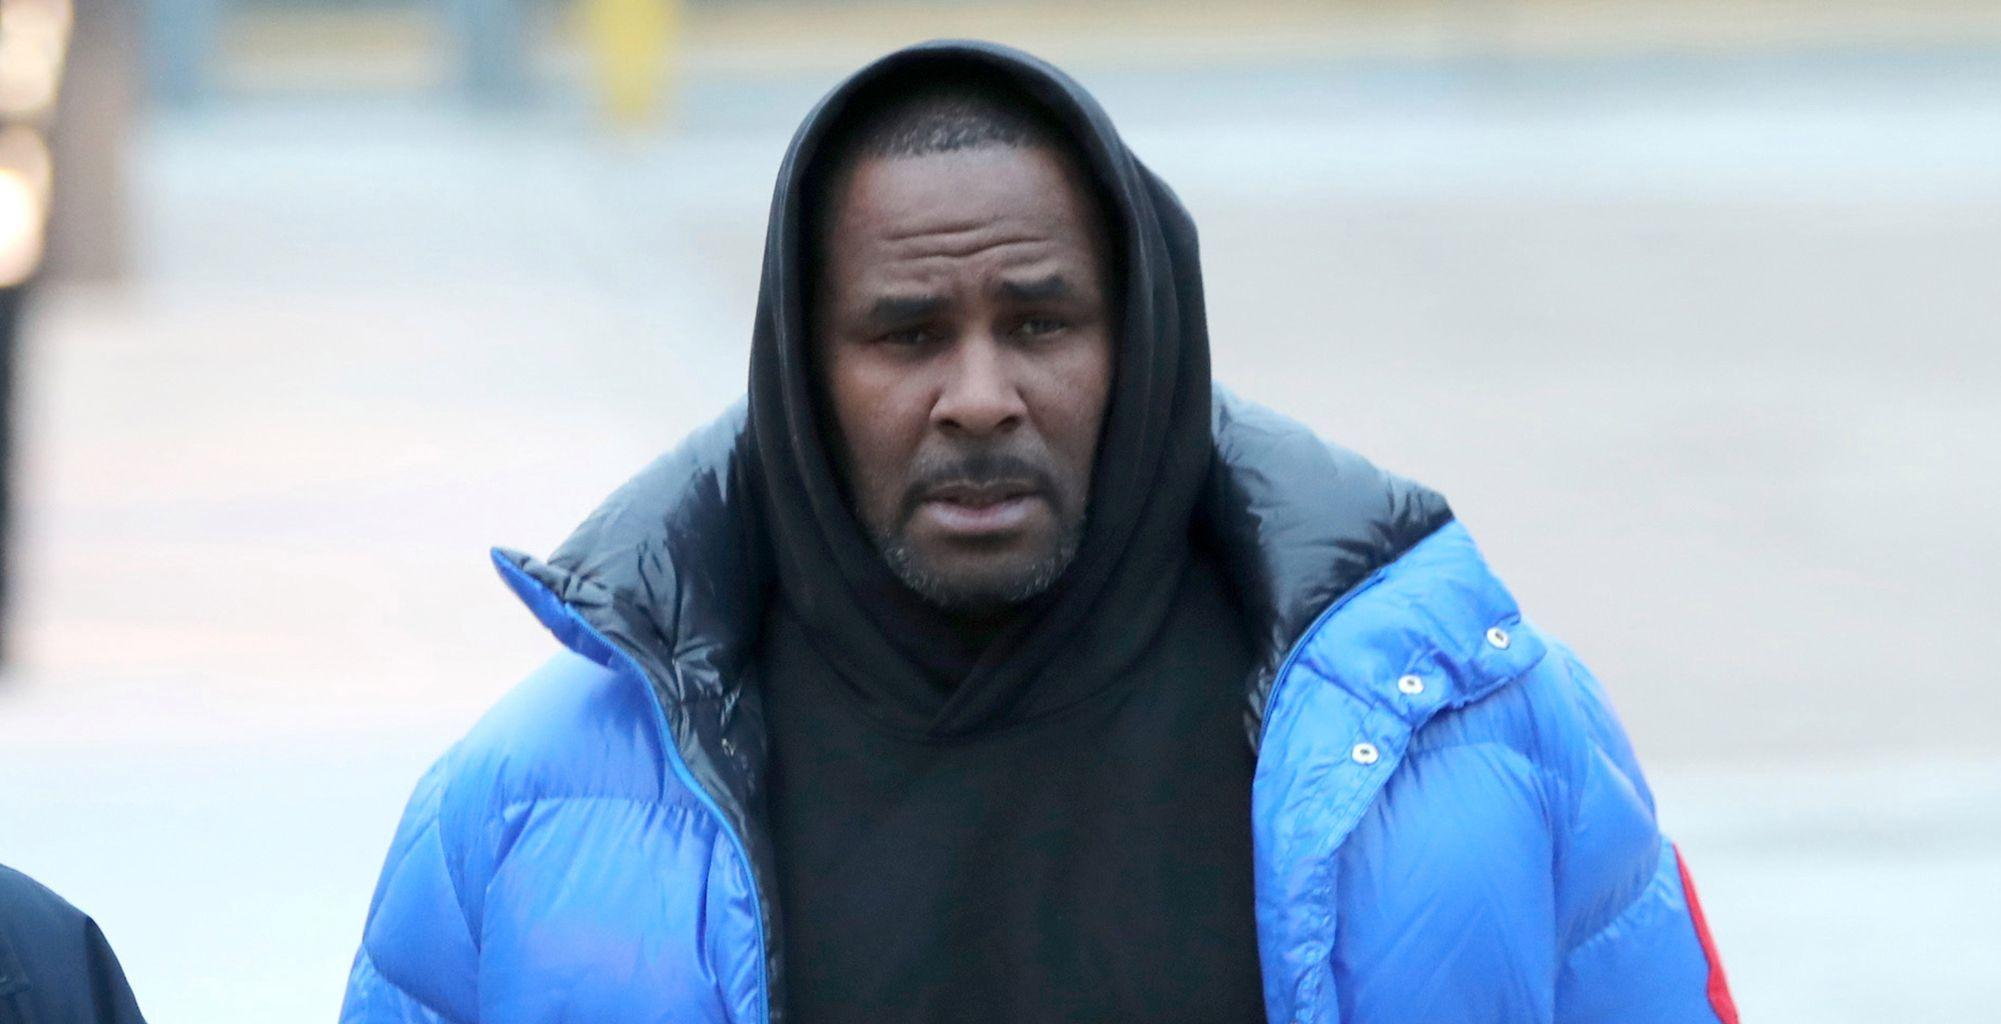 R. Kelly Reportedly Doubts His Music Career Is Over Despite The Accusations Against Him